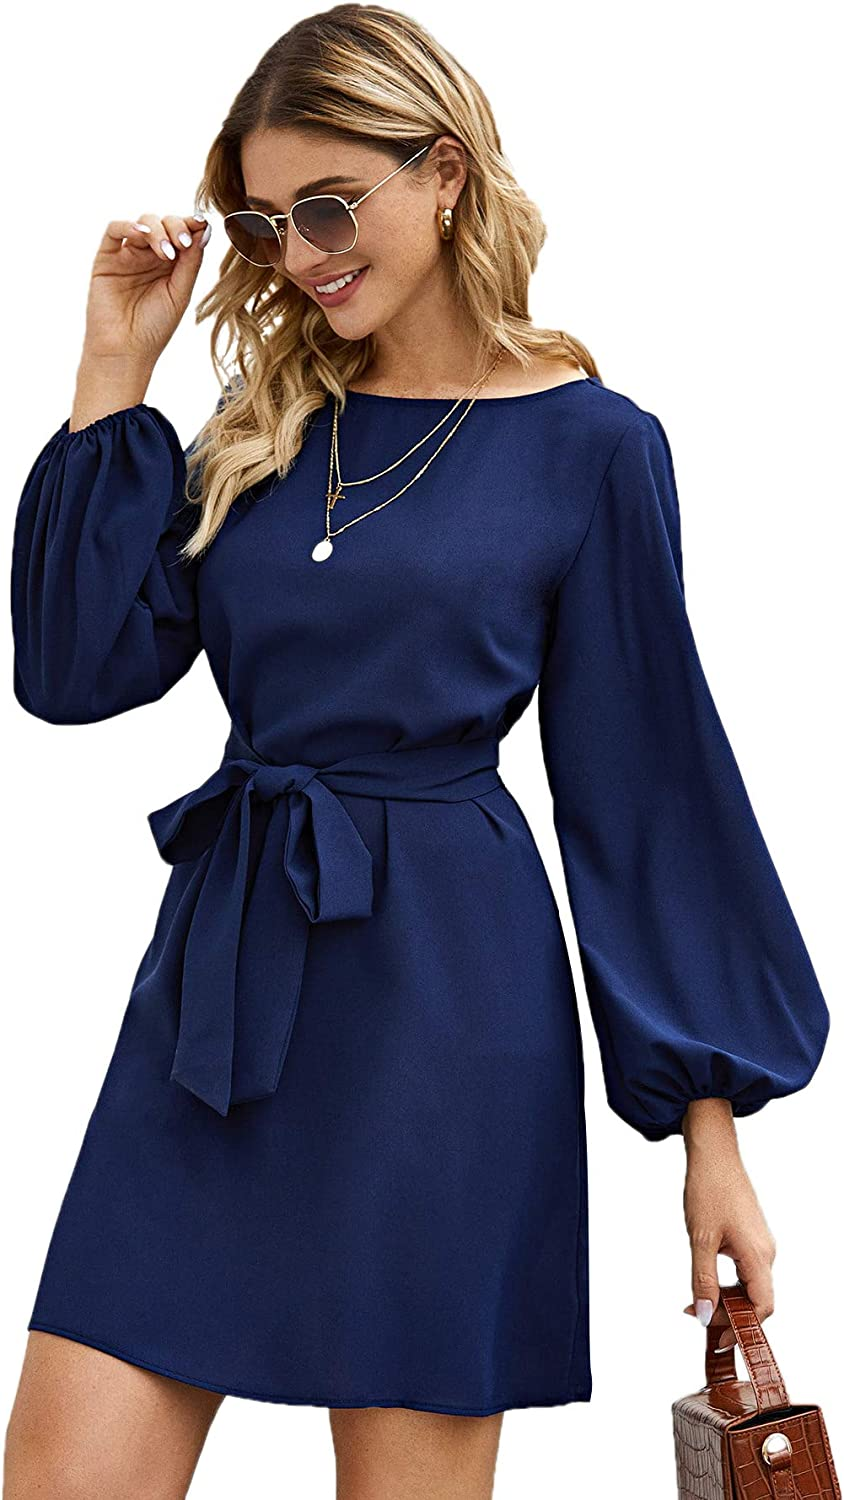 Milumia Women's Party Cocktail Long Sleeve Boat Neck Self Tie Waisted Knot Tunic Dress